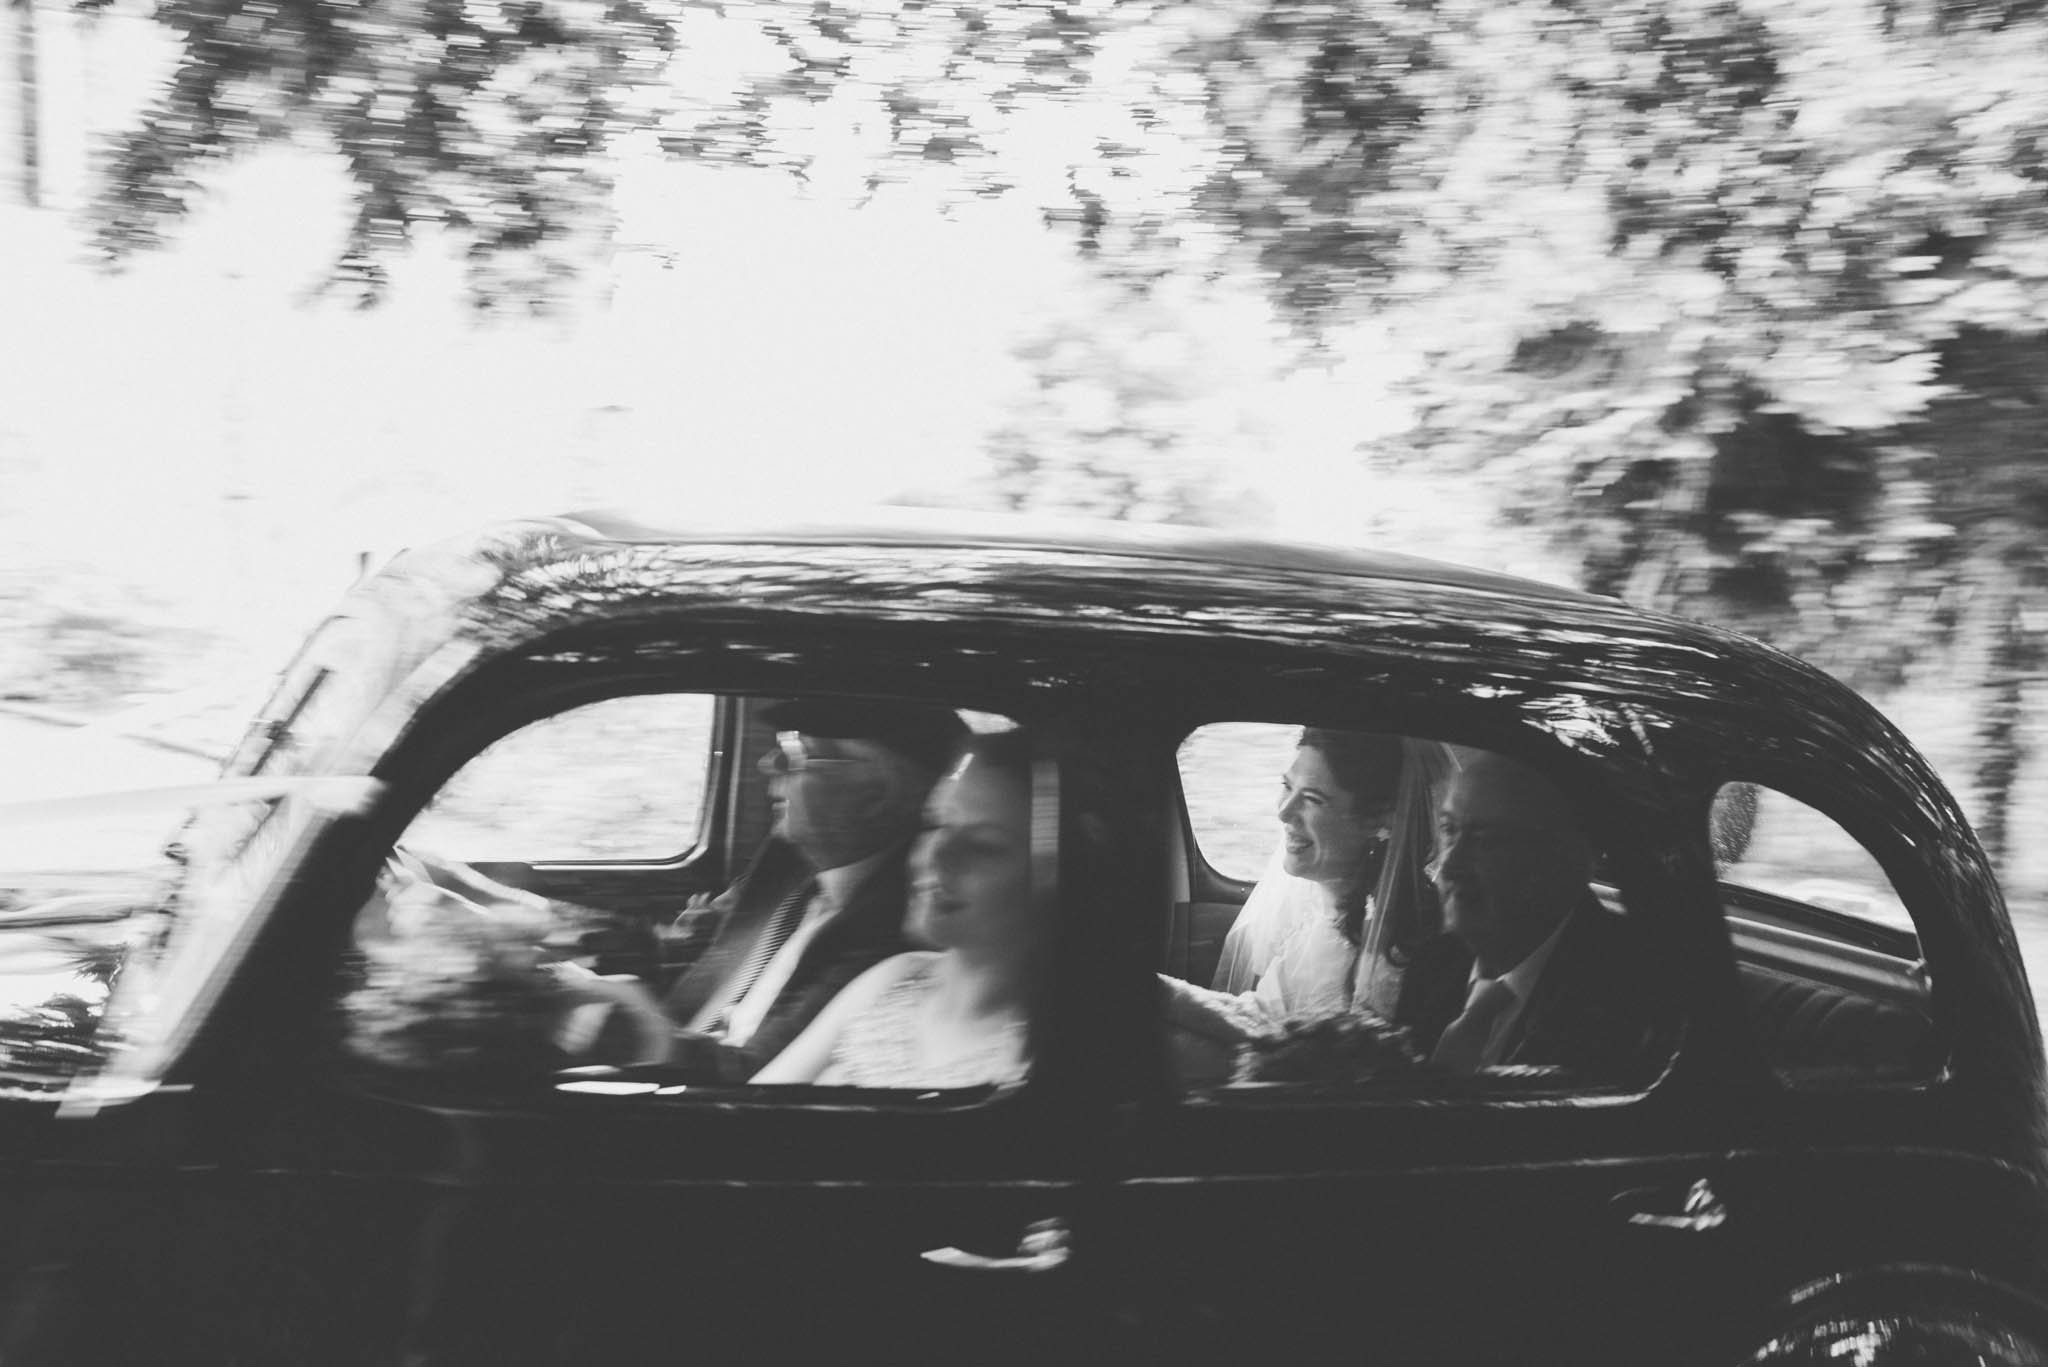 motion-blur-wedding-blog-scott-stockwell-photography-end-2017.jpg